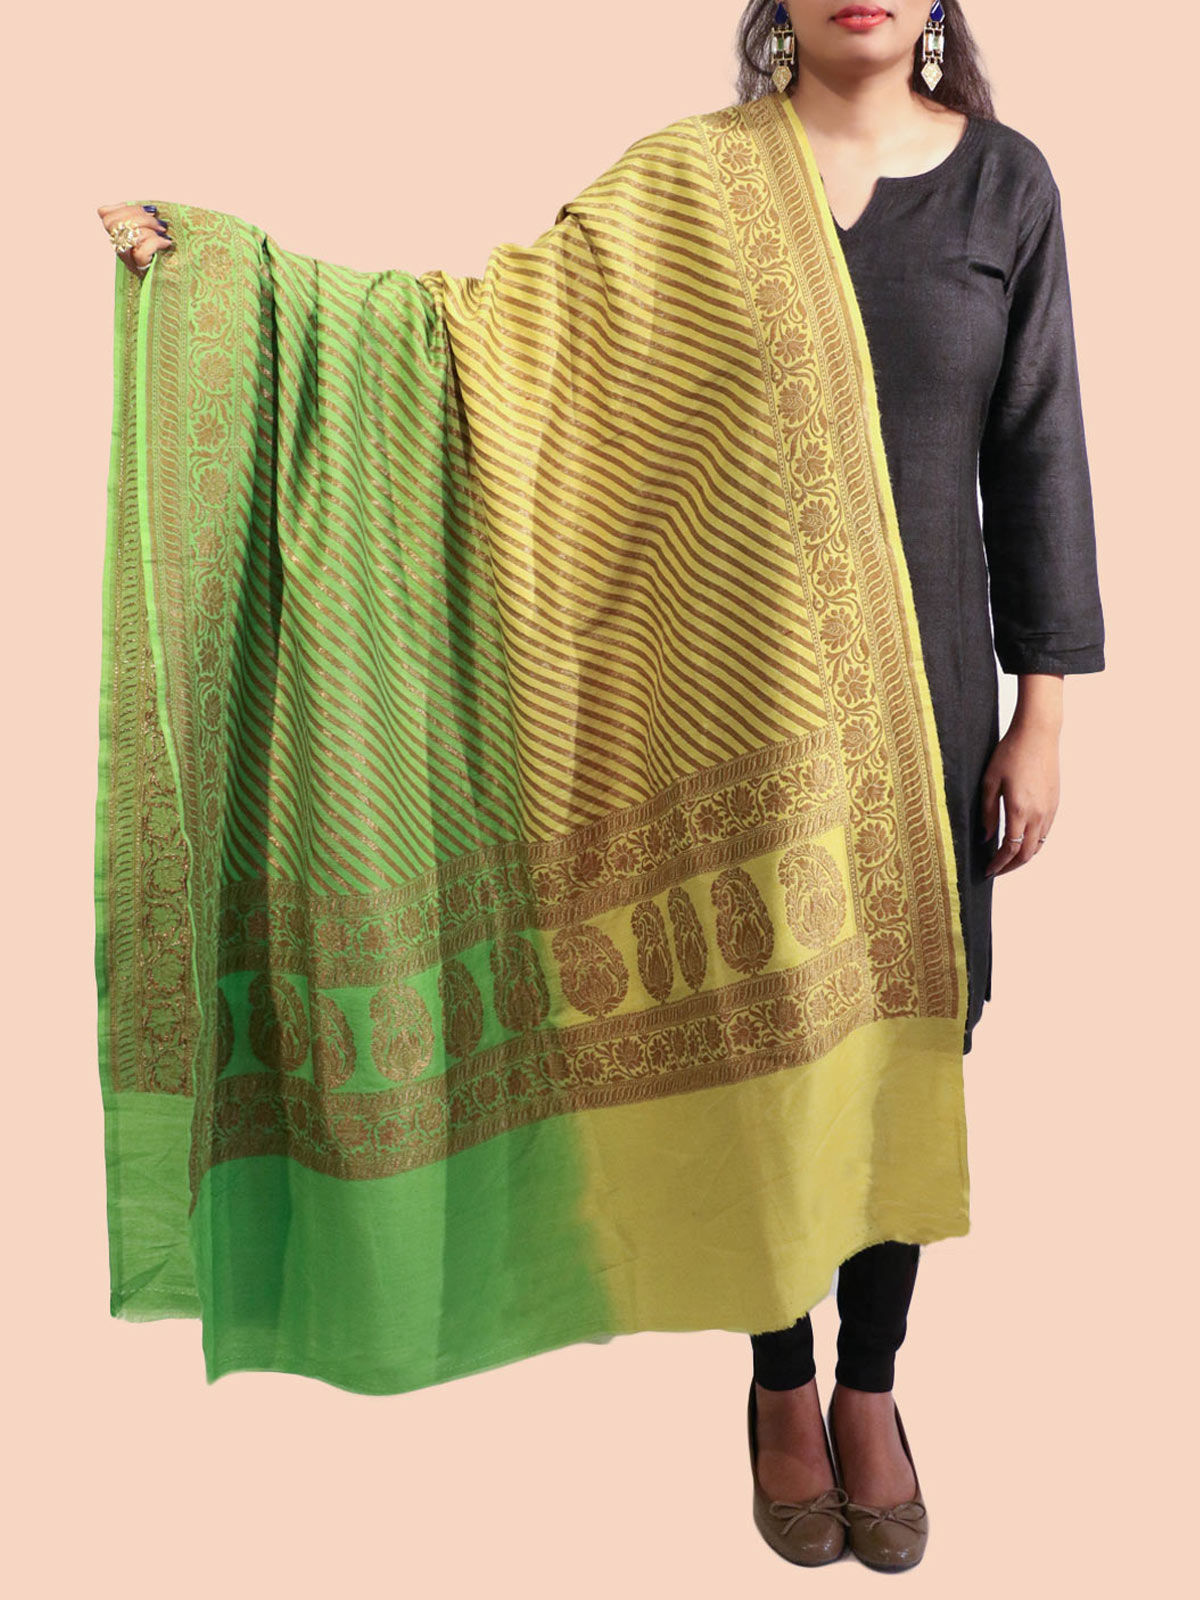 Green-Yellow Banarasi silk dupatta